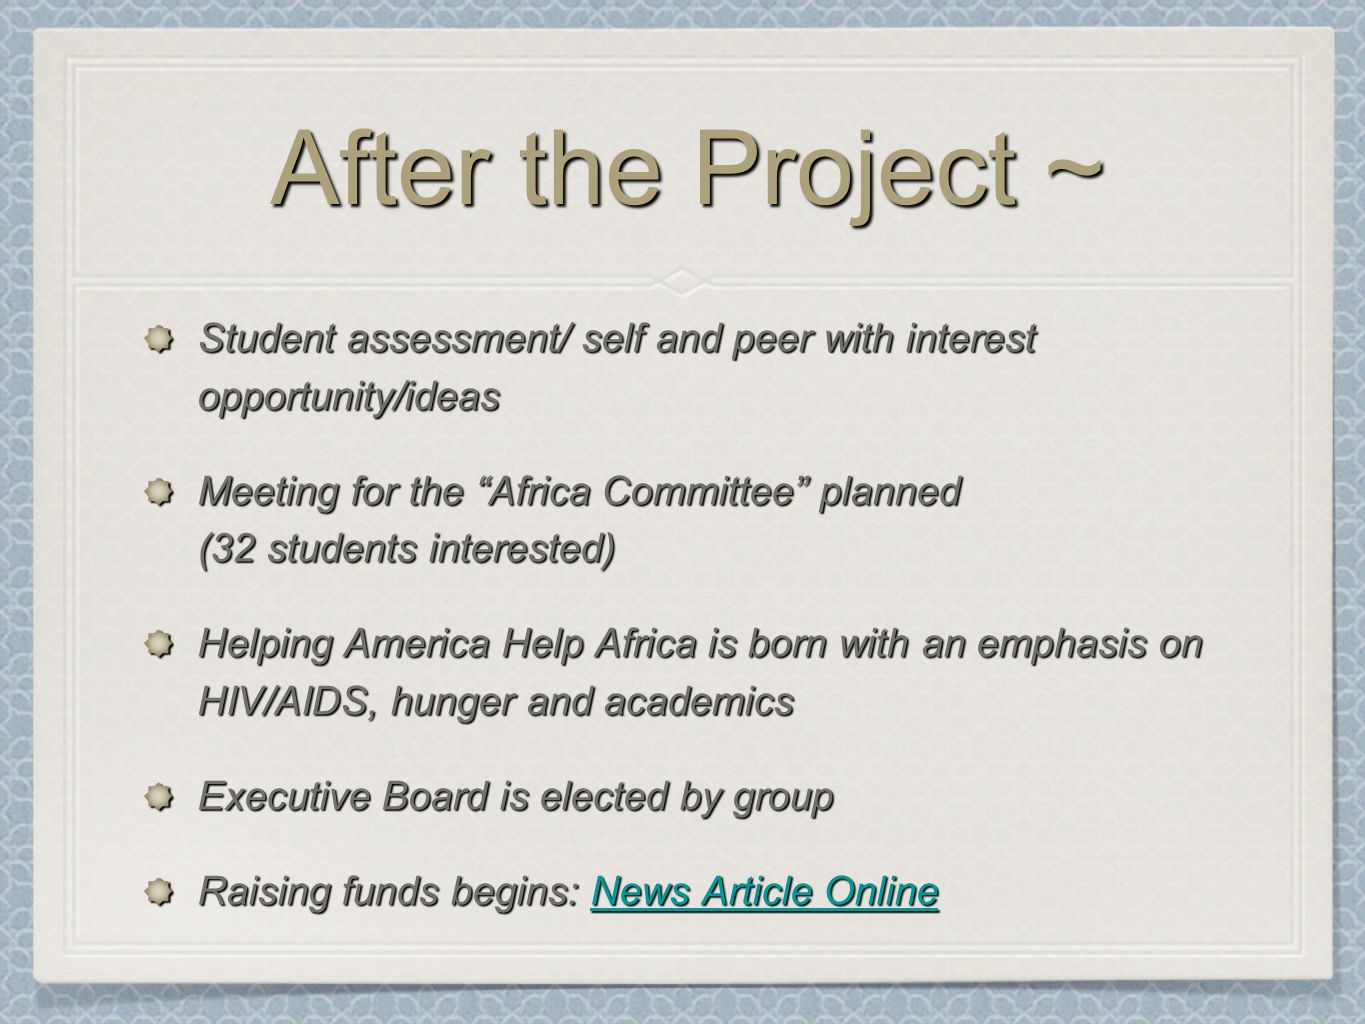 After the Project ~ Student assessment/ self and peer with interest opportunity/ideas Meeting for the Africa Committee planned (32 students interested) Helping America Help Africa is born with an emphasis on HIV/AIDS, hunger and academics Executive Board is elected by group Raising funds begins: News Article Online News Article OnlineNews Article Online